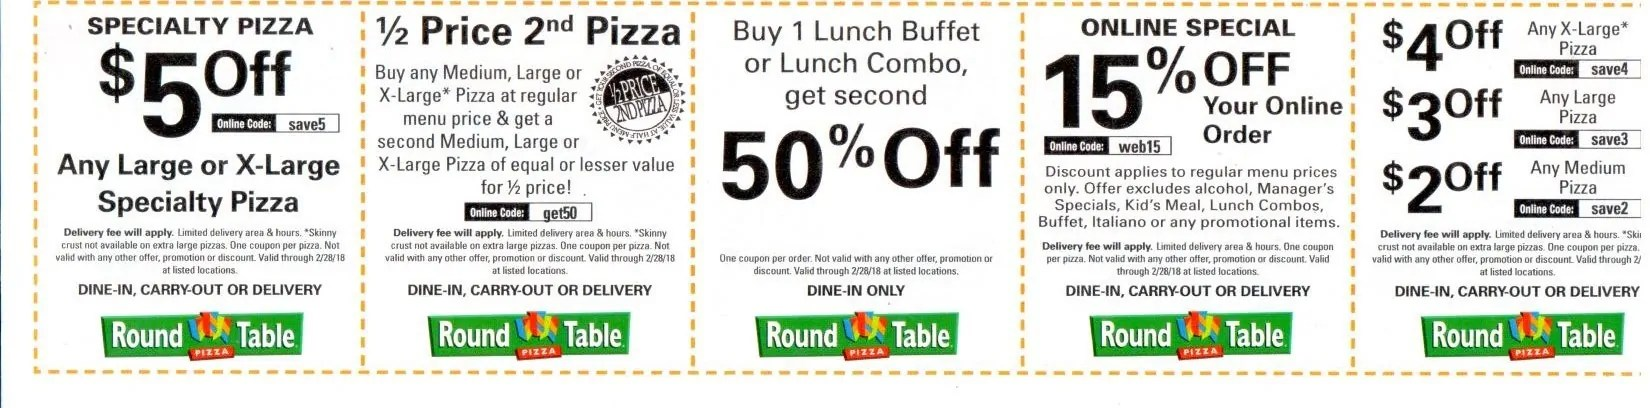 Super Bowl Pizza Deals S And Wing Specials Via